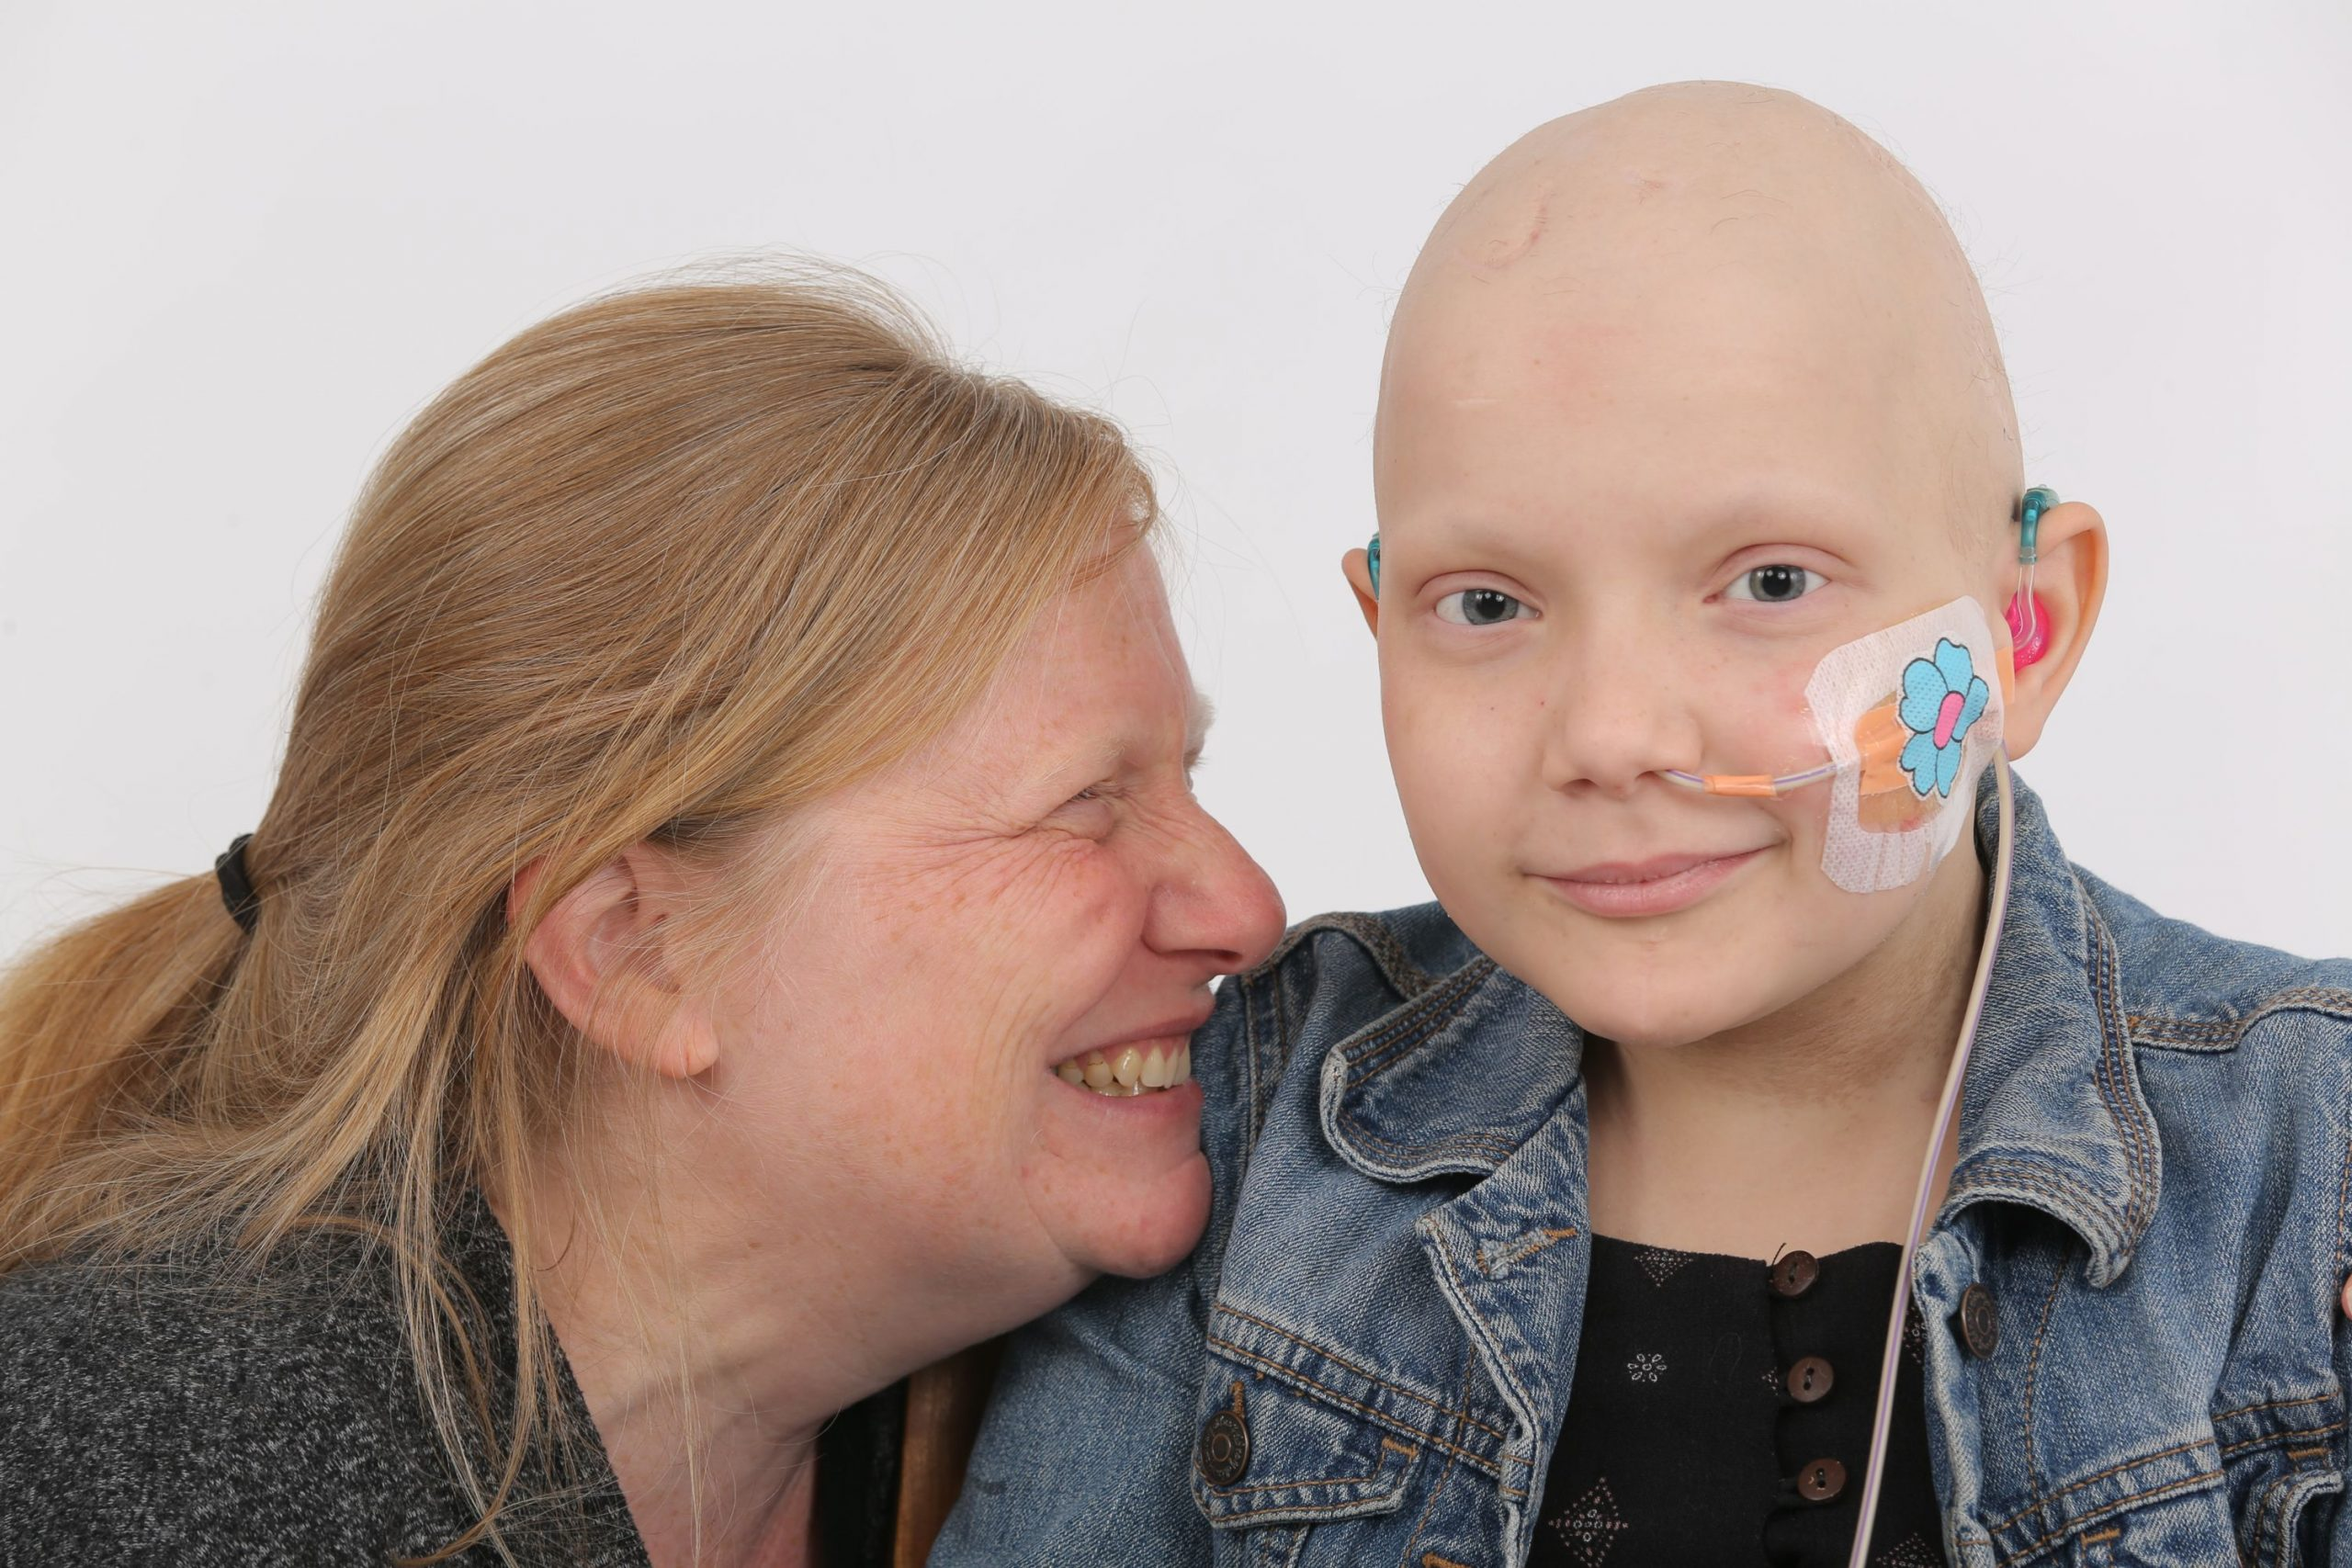 About Childhood Cancer